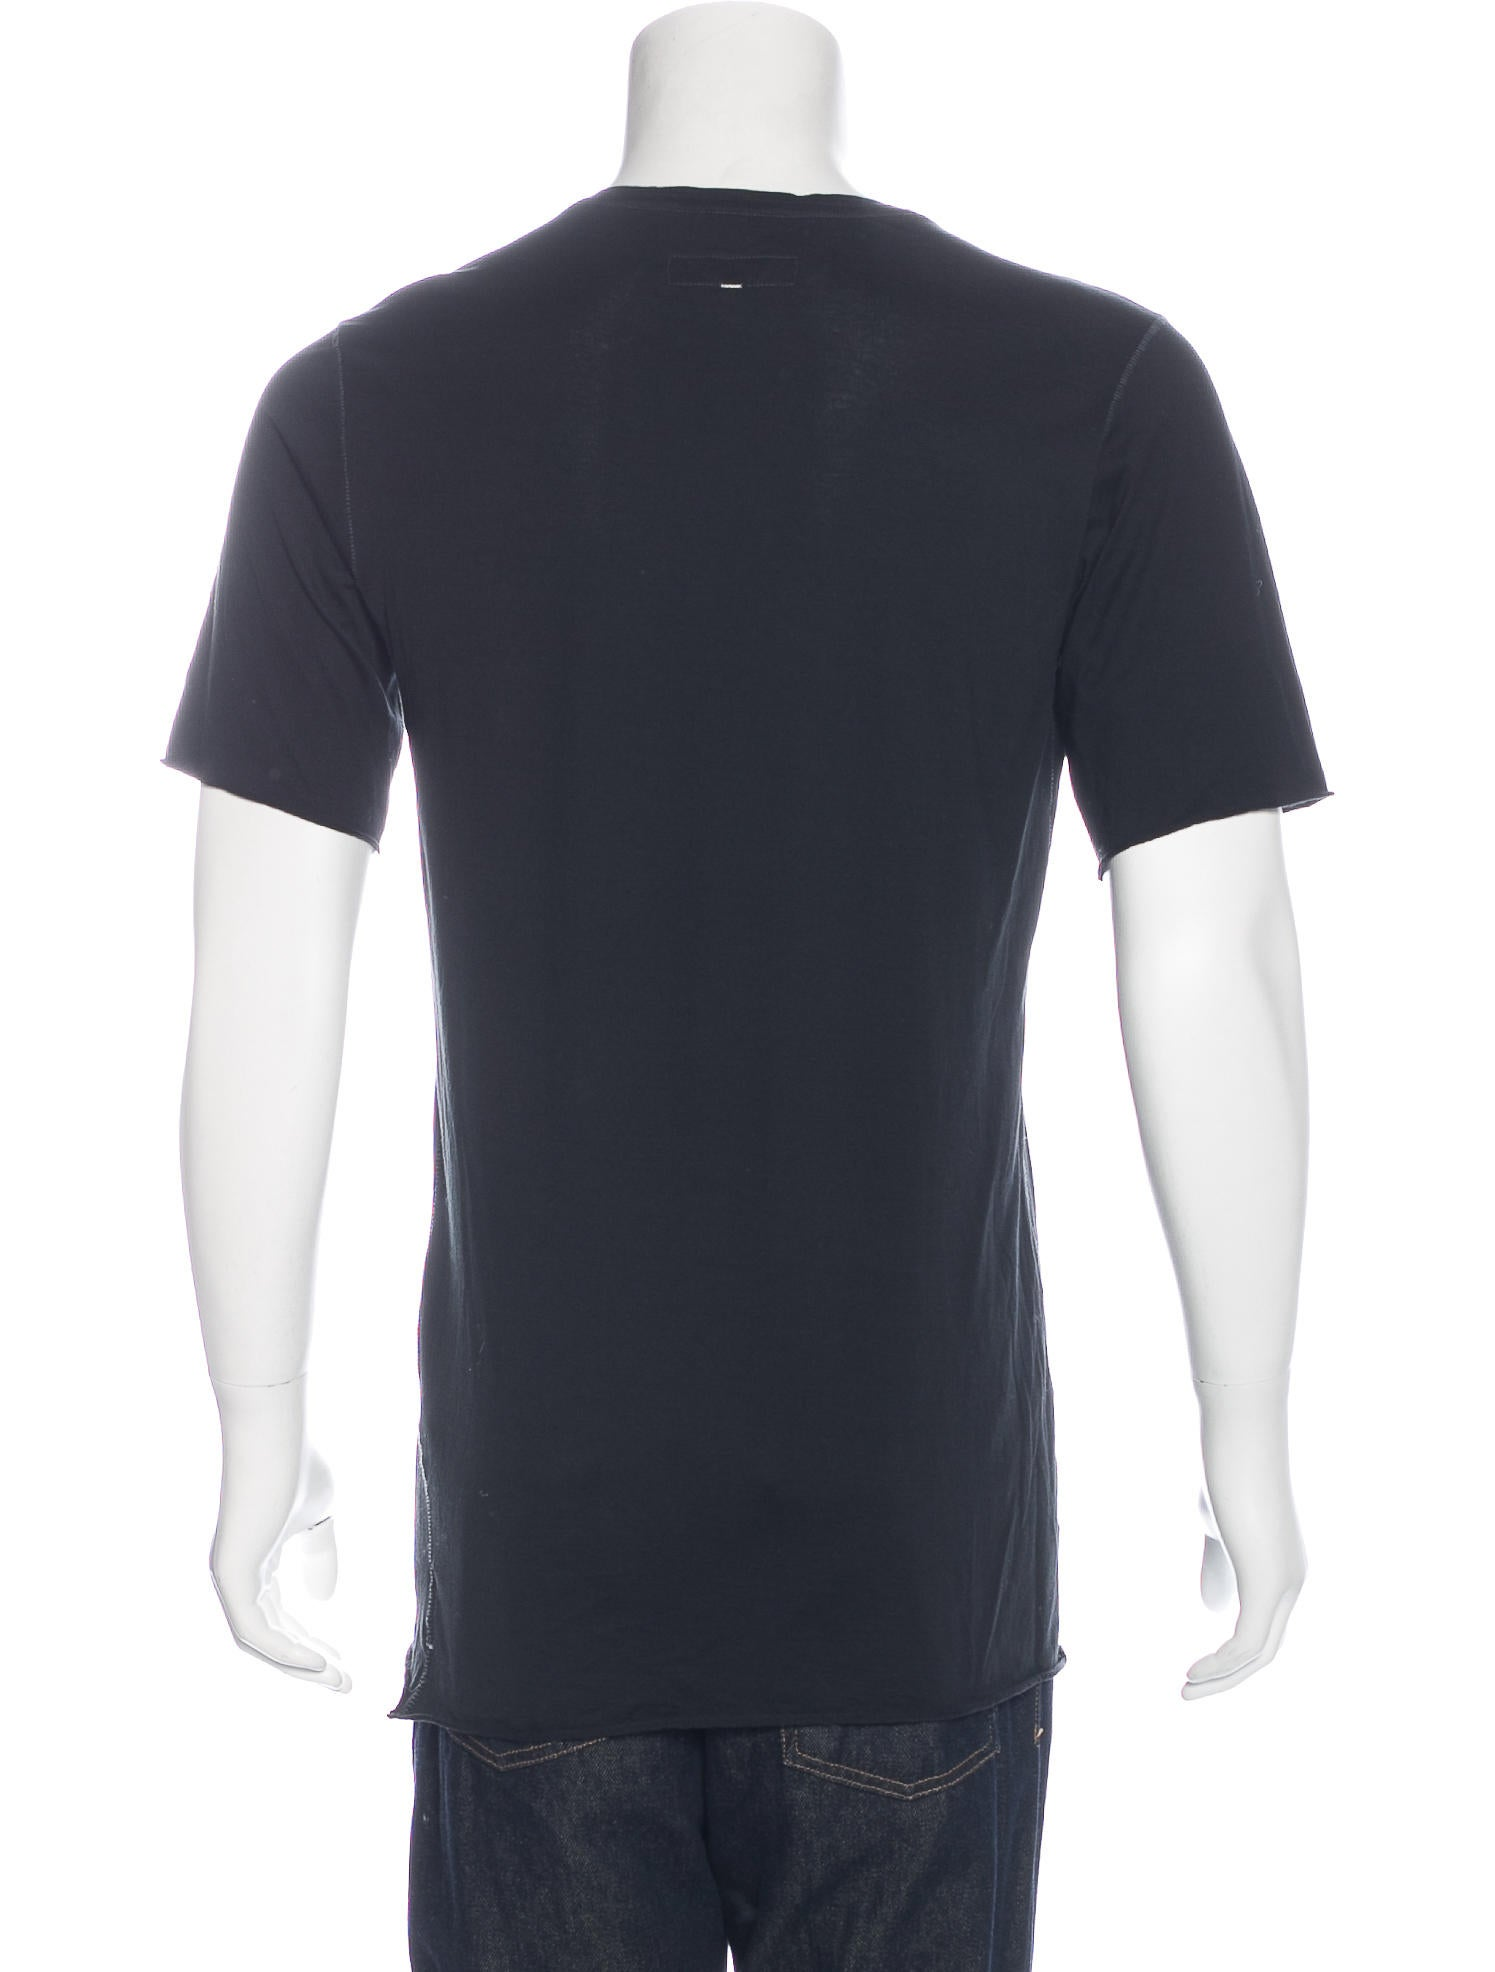 Rag Bone Distressed Stitched T Shirt Clothing